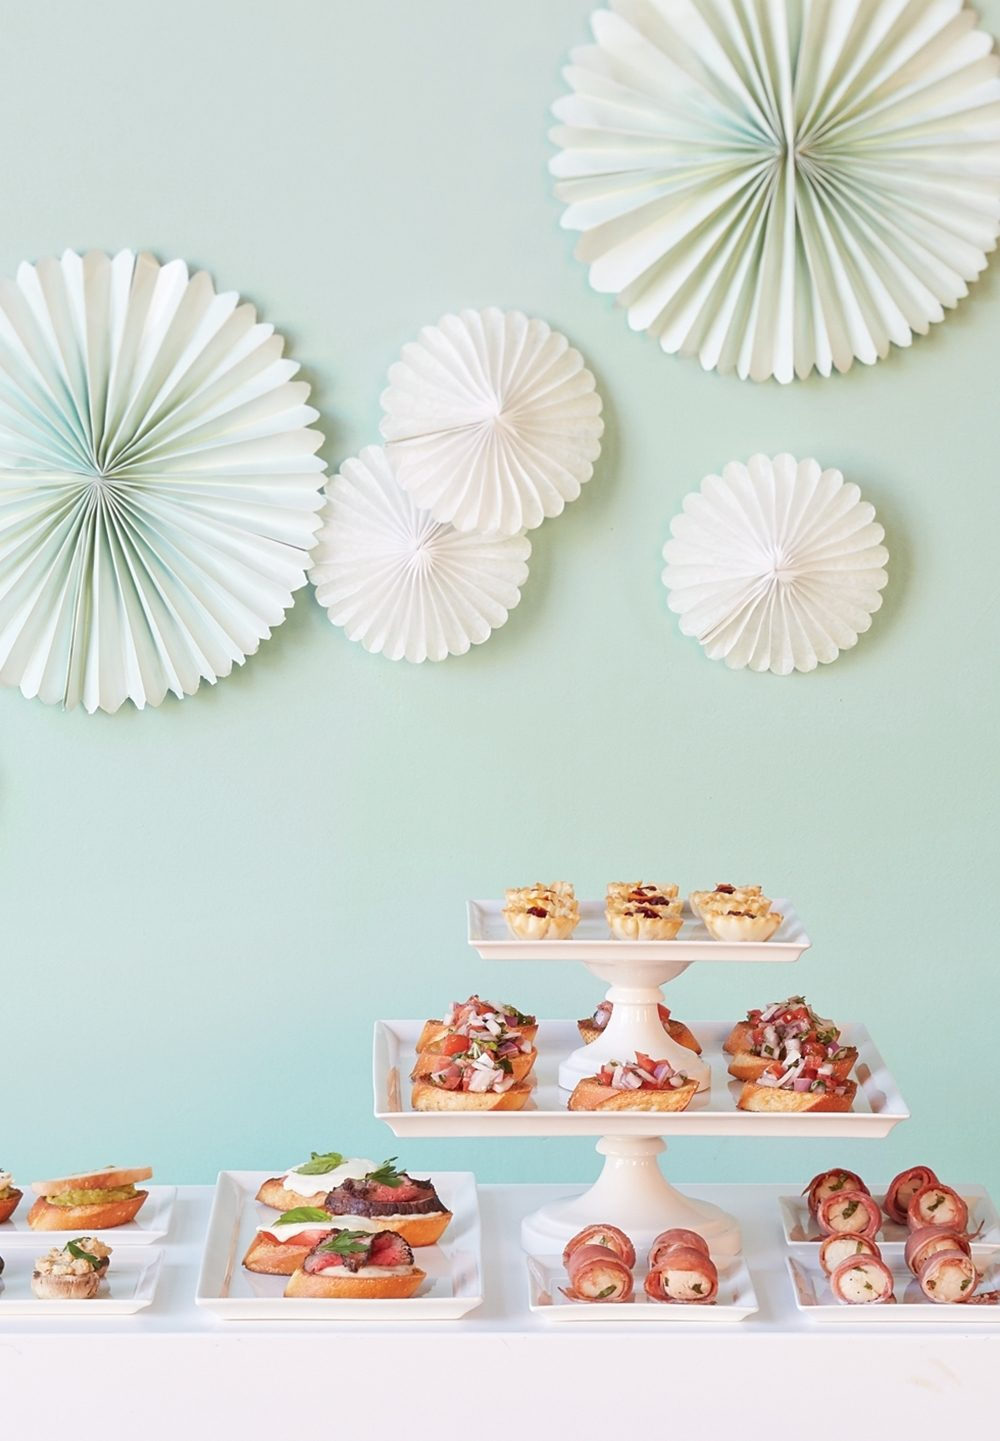 A buffet of finger foods and paper fan decorations